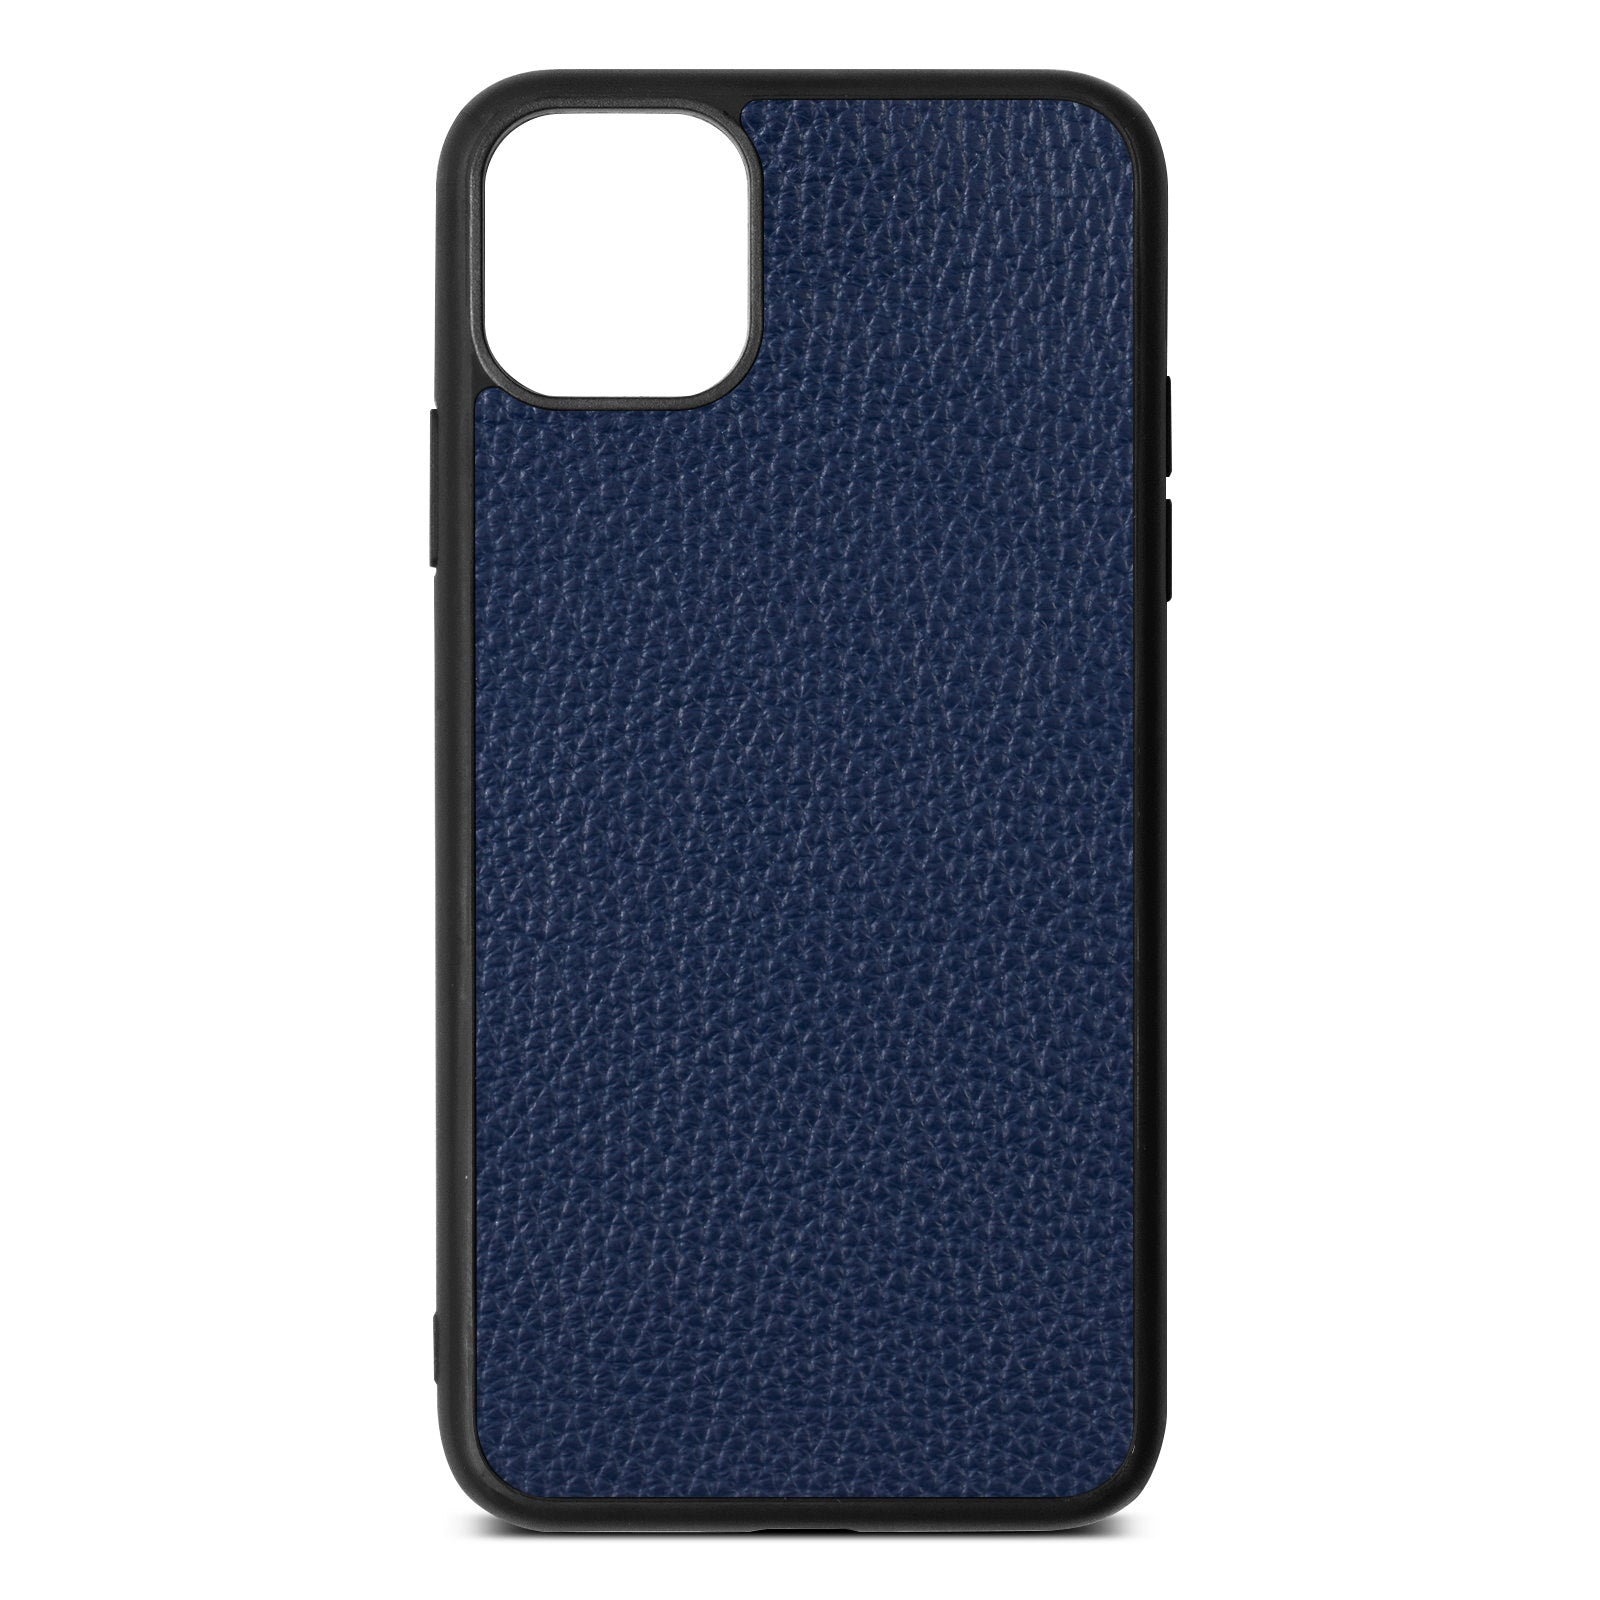 Blank iPhone 11 Pro Max Navy Blue Pebble Grain Leather Case